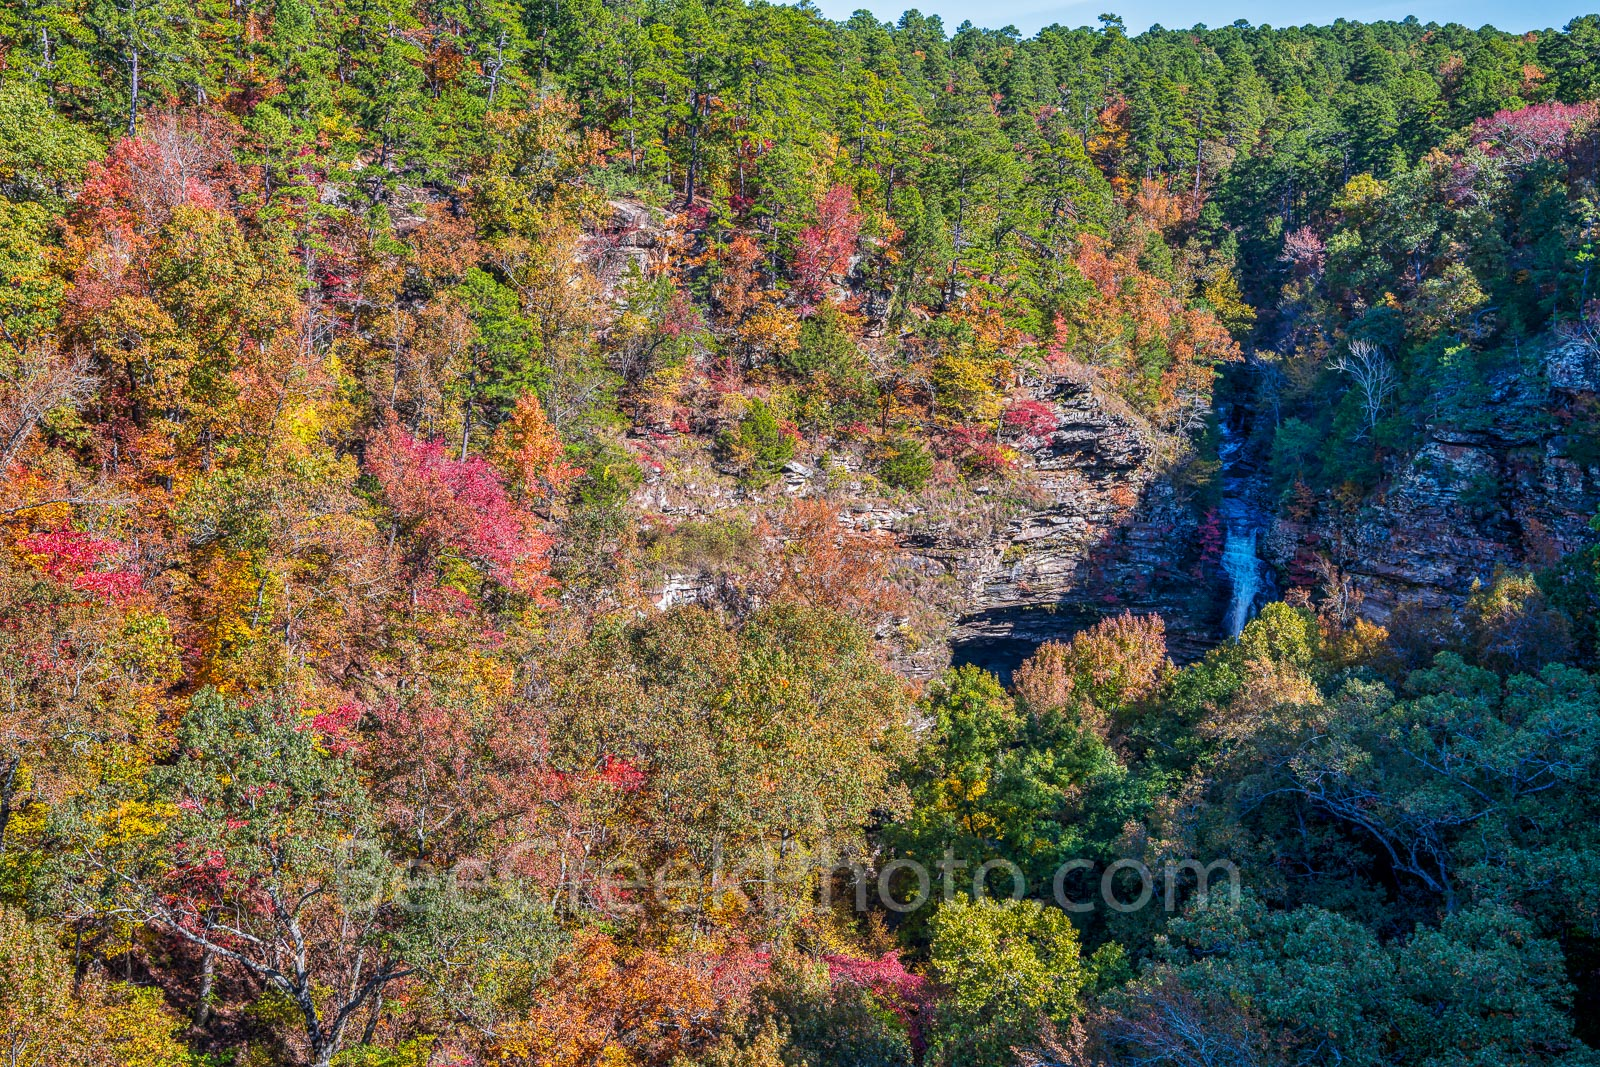 cedar fall, waterfall, bluff, cliff, colorful trees, auatumn, fall colors, river, pines, southern yellow pine, maples, sweet gum, black hickory, waters, Lake Bailey, stream, wilderness, scenic, scener, photo